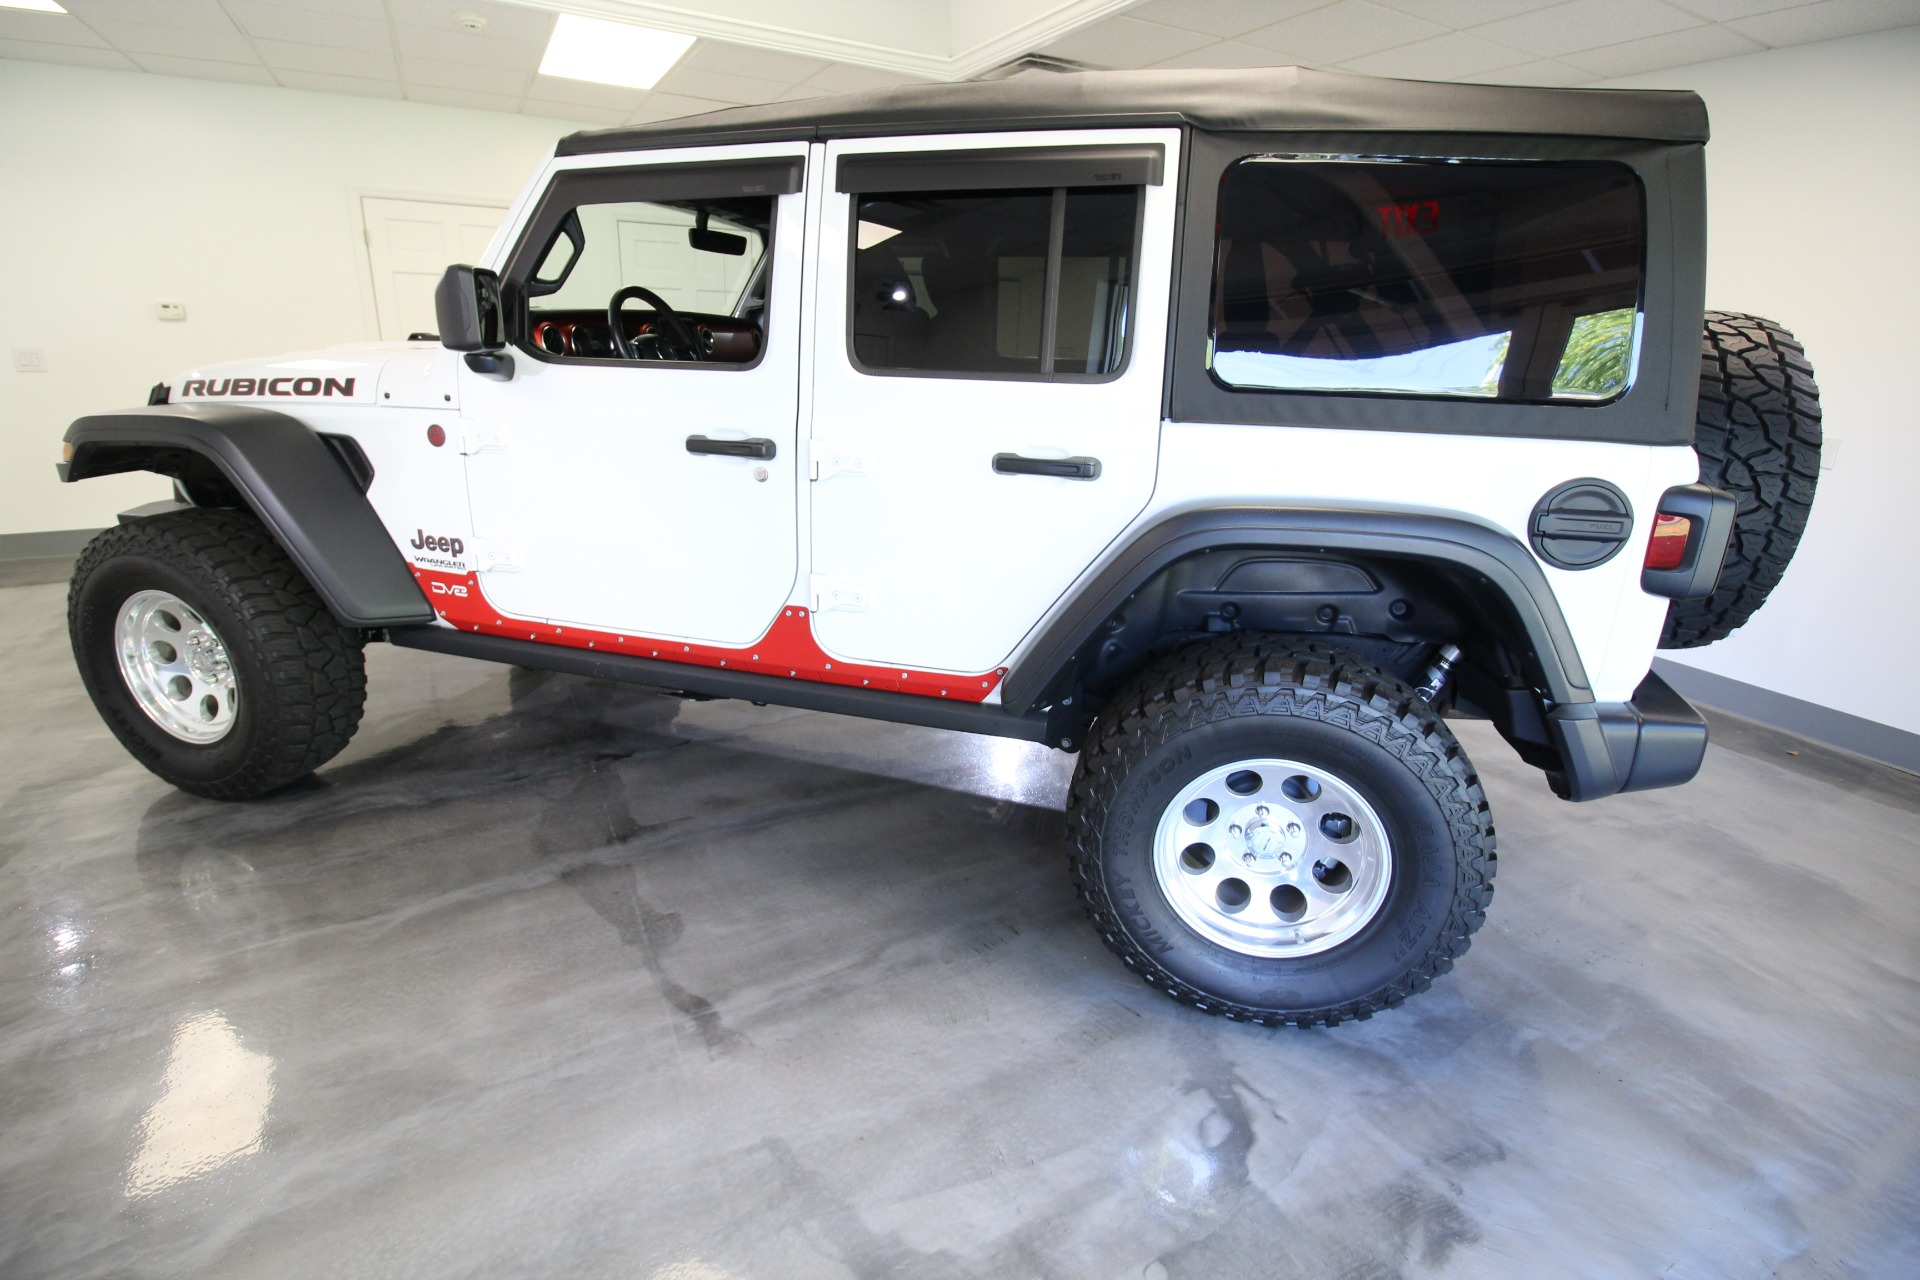 Used 2020 Jeep Wrangler Unlimited Rubicon Thousands of $$$ in UPGRADES LIFT AND MORE | Albany, NY